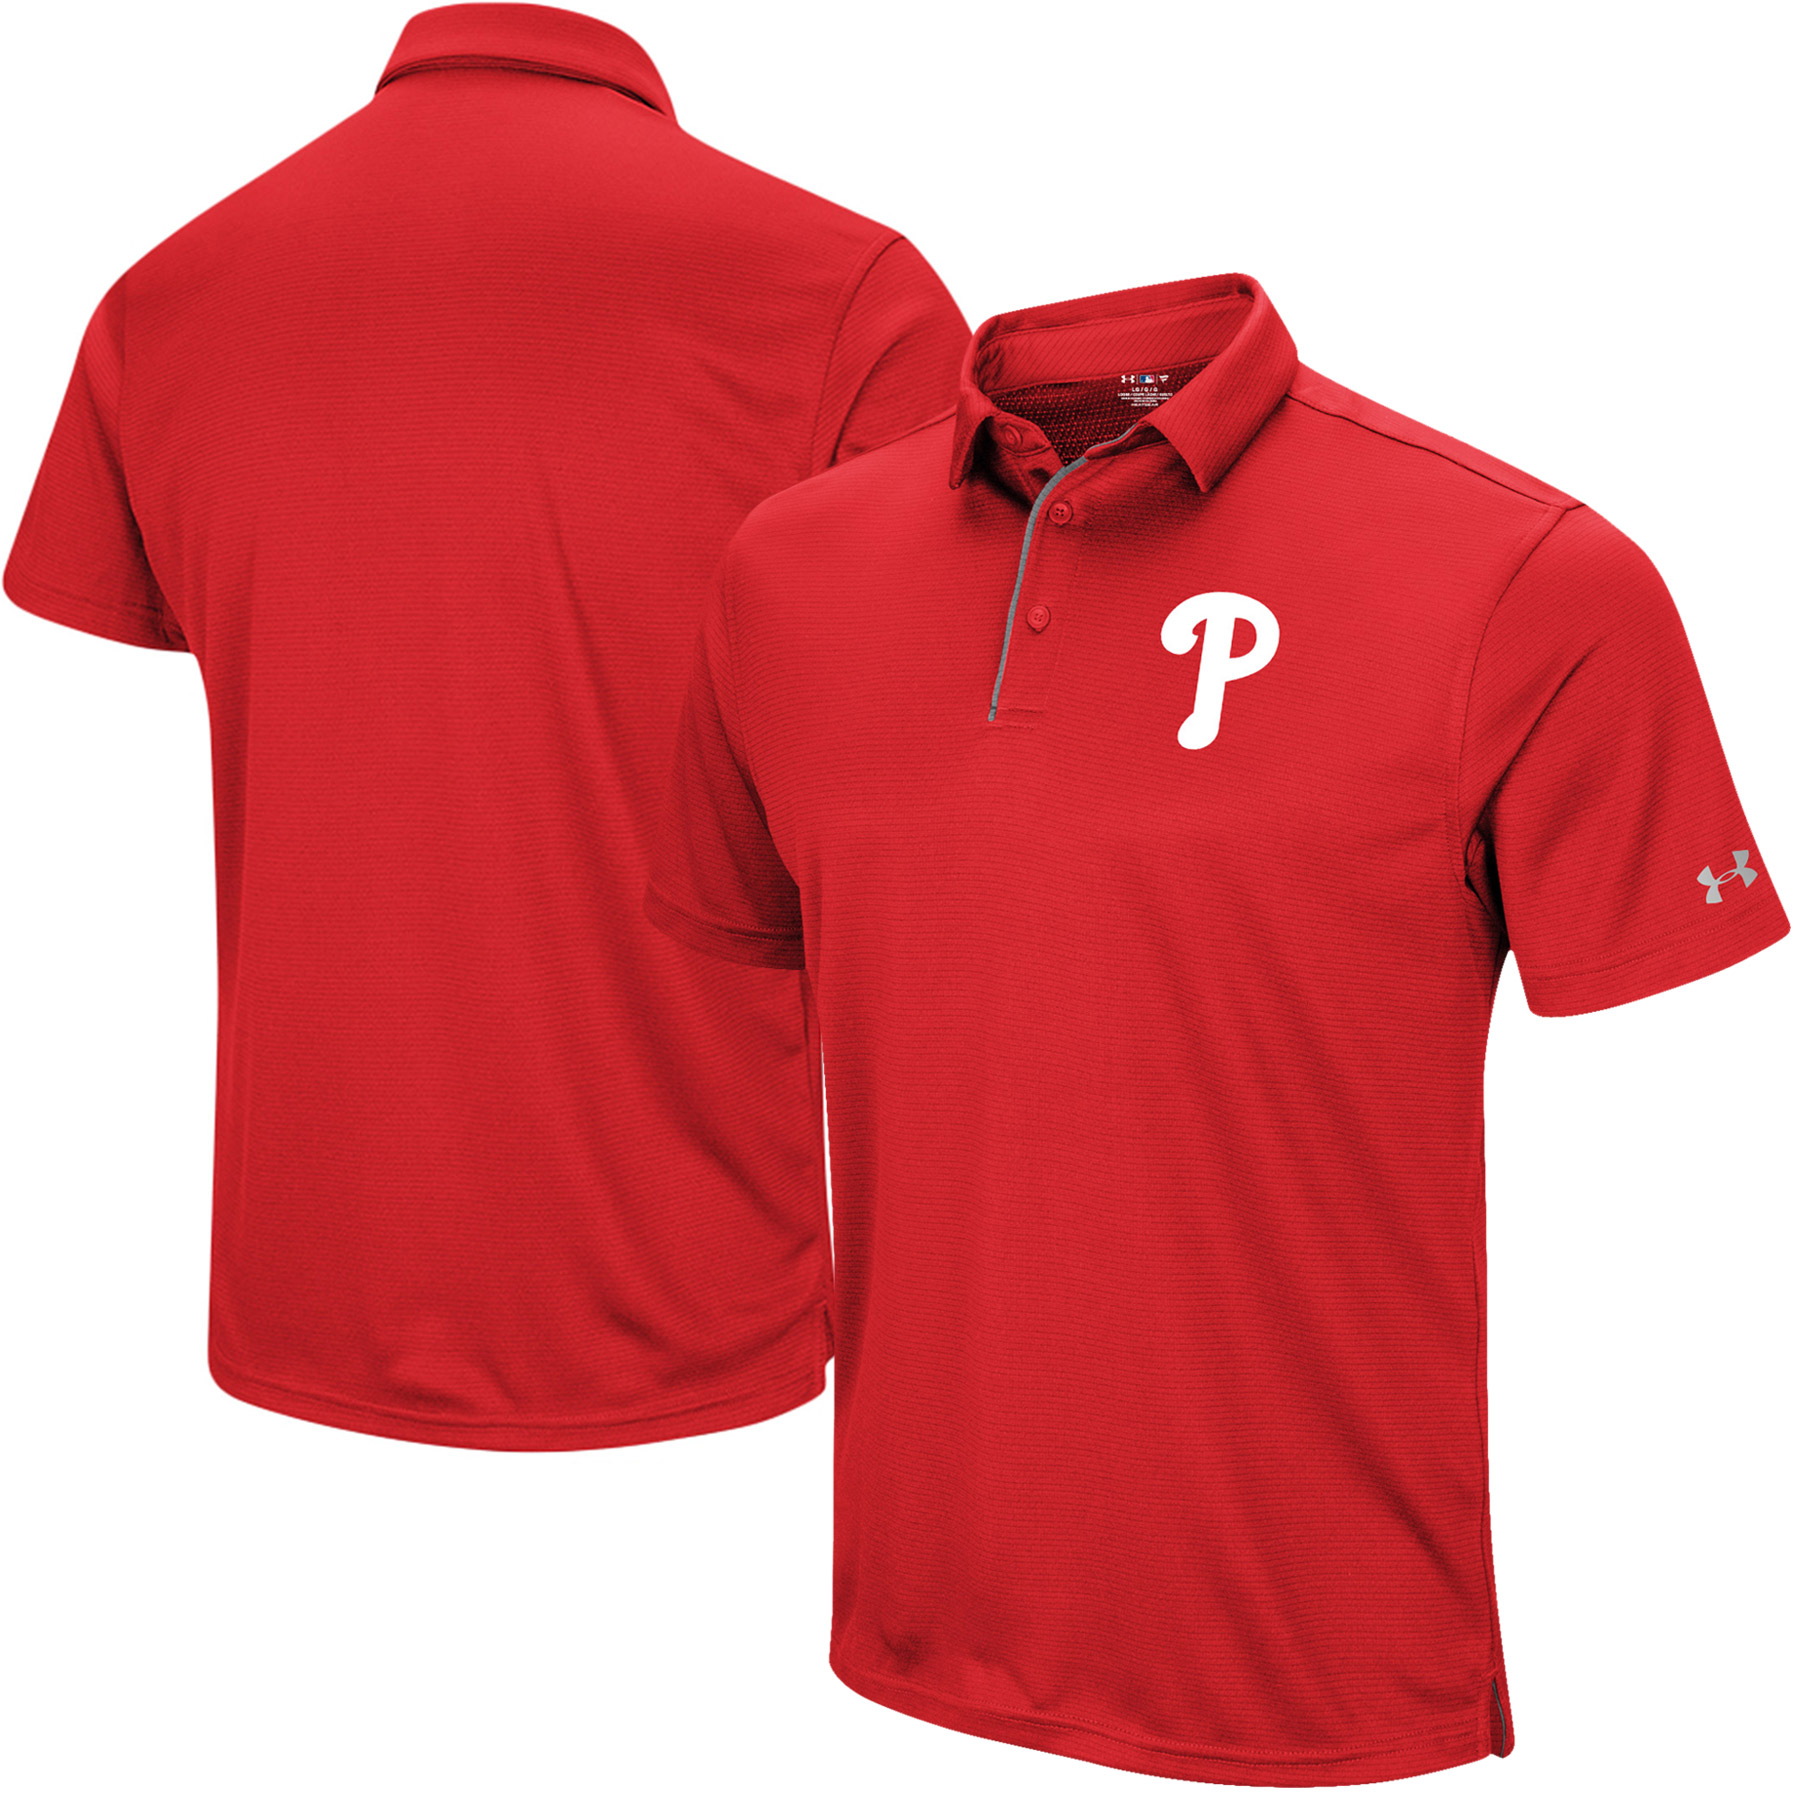 Philadelphia Phillies Under Armour UA Tech Left Chest Polo - Red